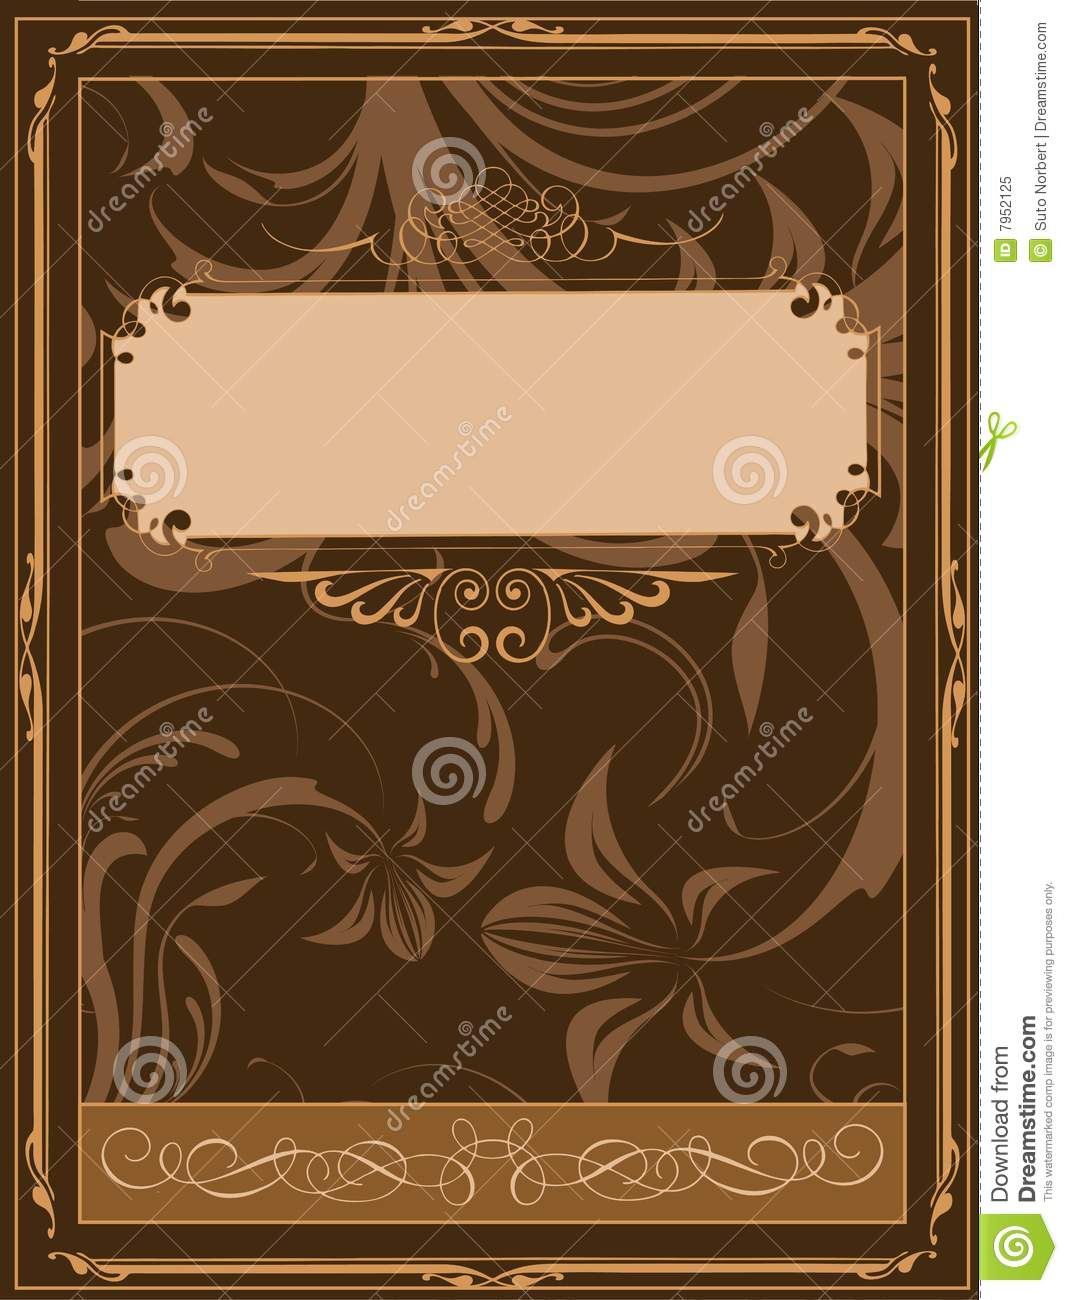 Book Cover Stock Images ~ Old book cover stock vector illustration of document